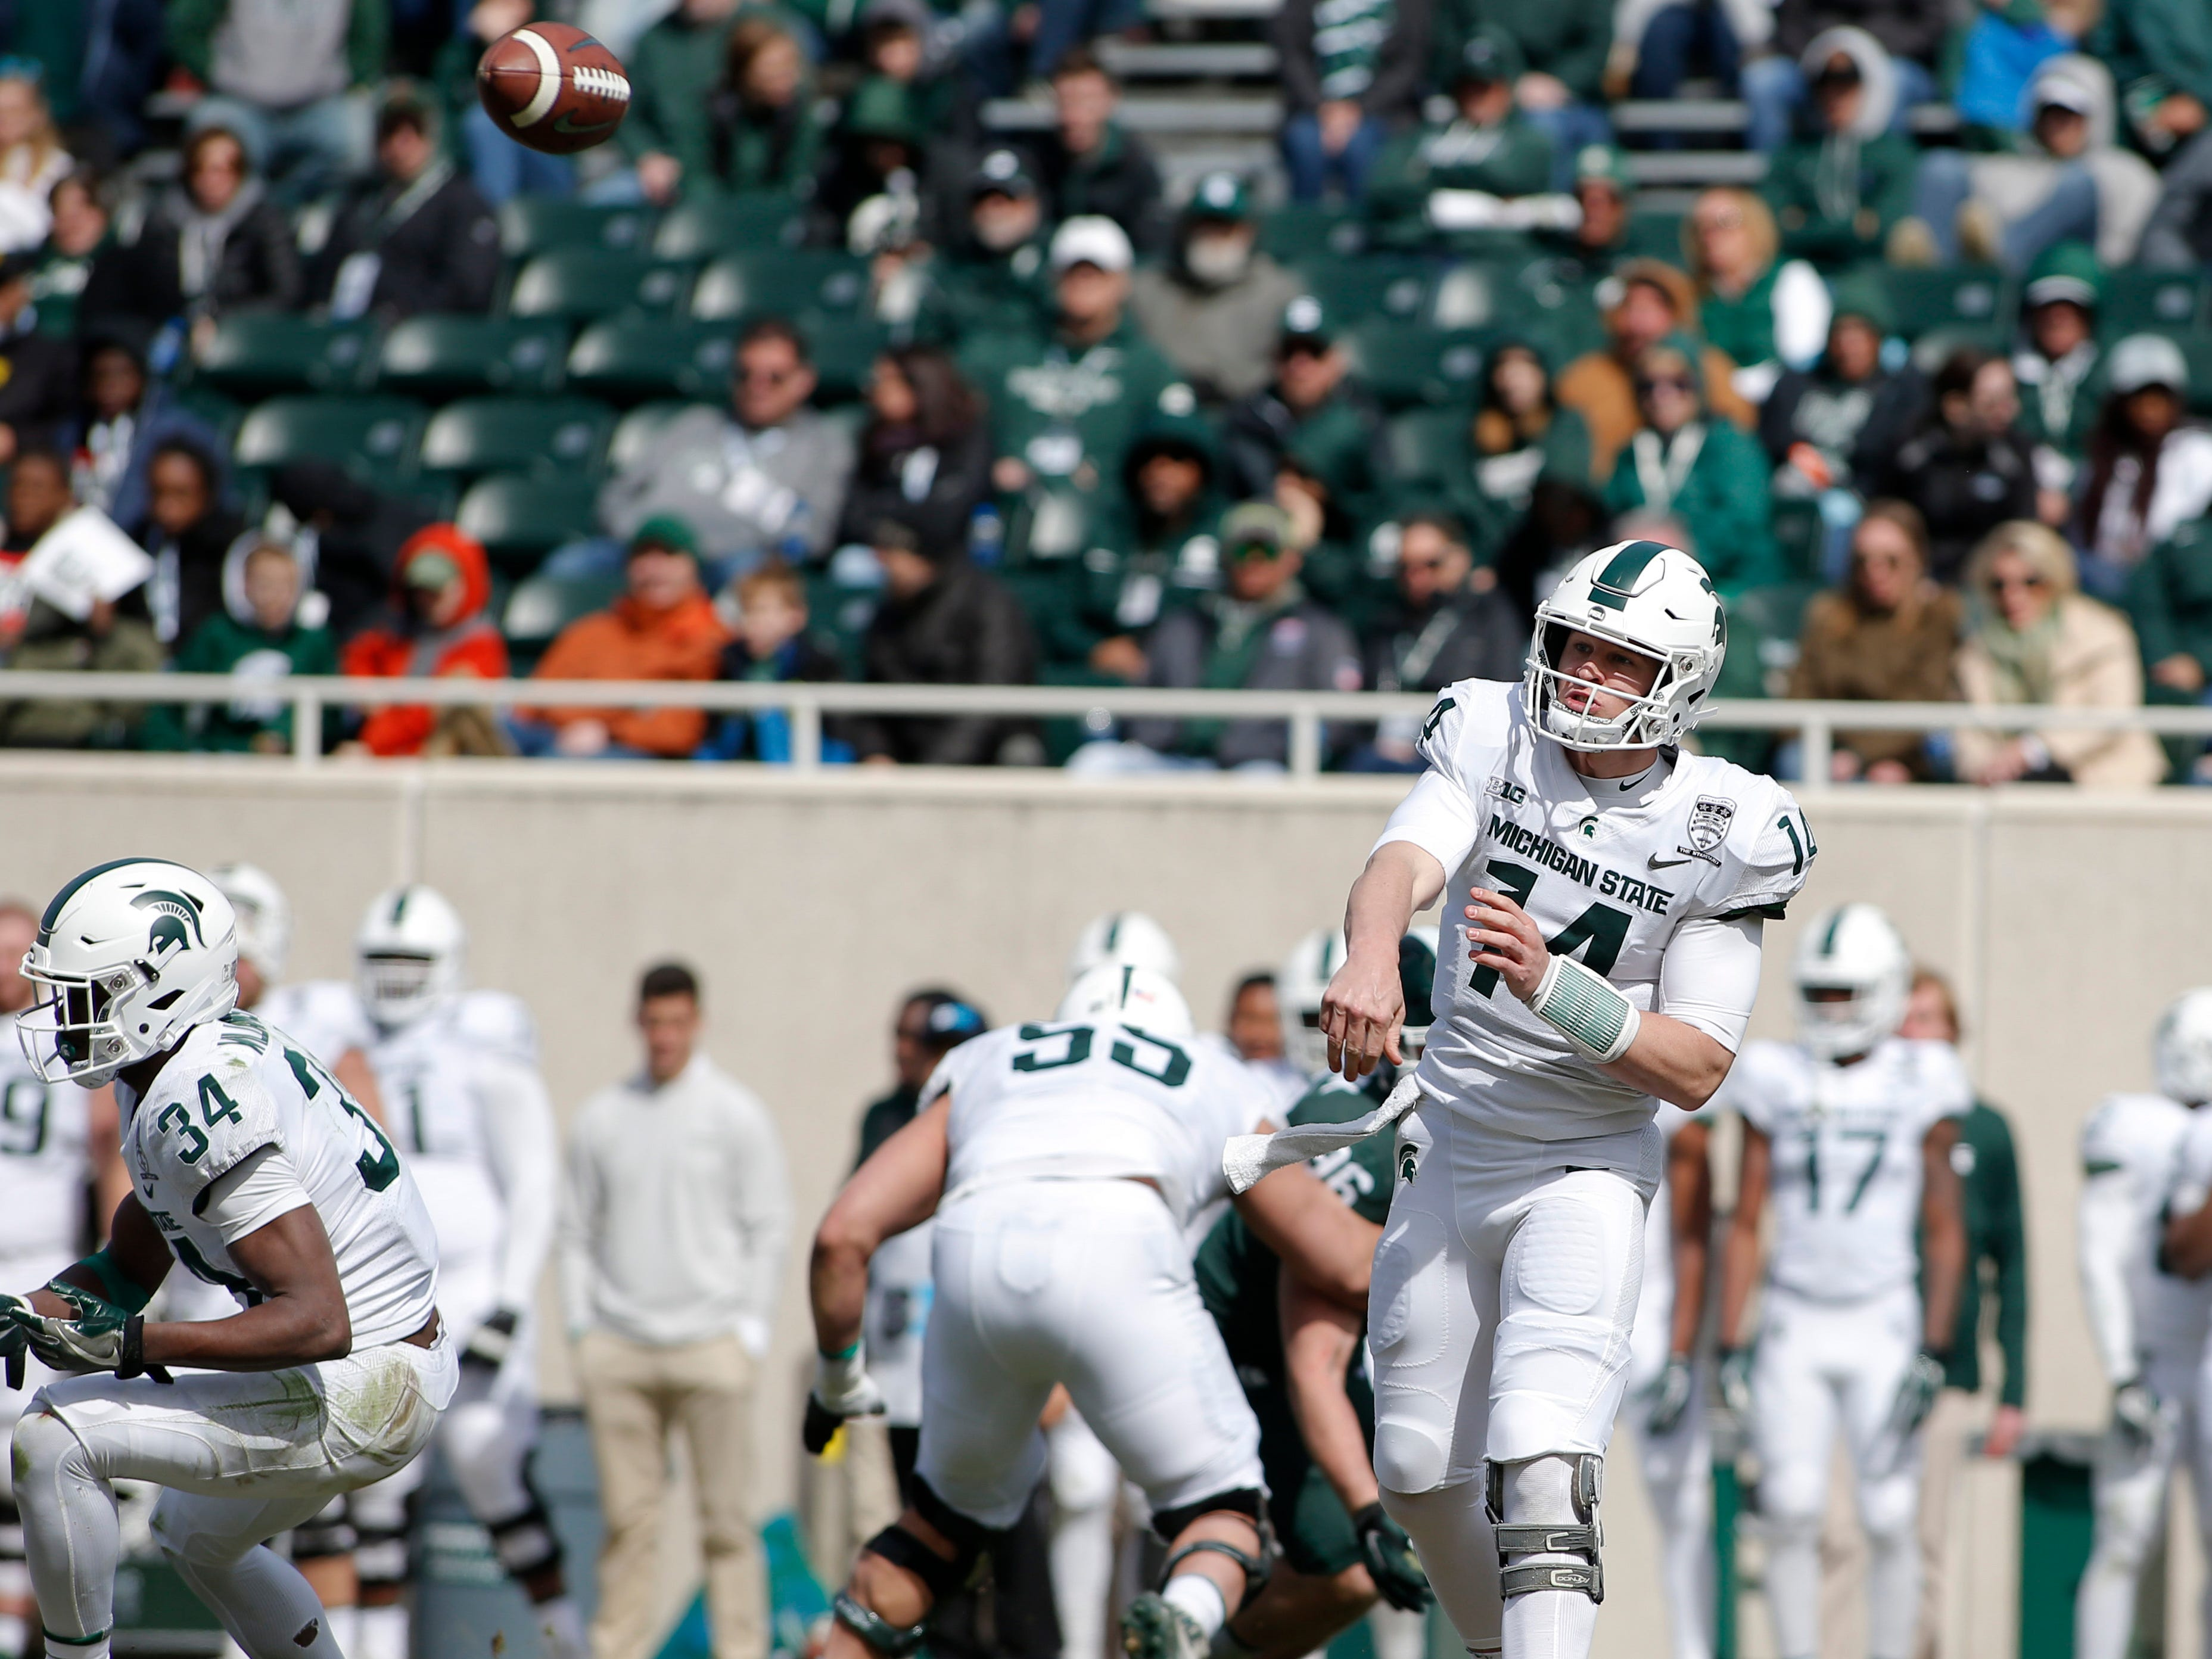 Michigan State quarterback Brian Lewerke, right, throws a pass as Anthony Williams (34) blocks during an NCAA college football spring scrimmage game, Saturday, April 13, 2019, in East Lansing, Mich. (AP Photo/Al Goldis)